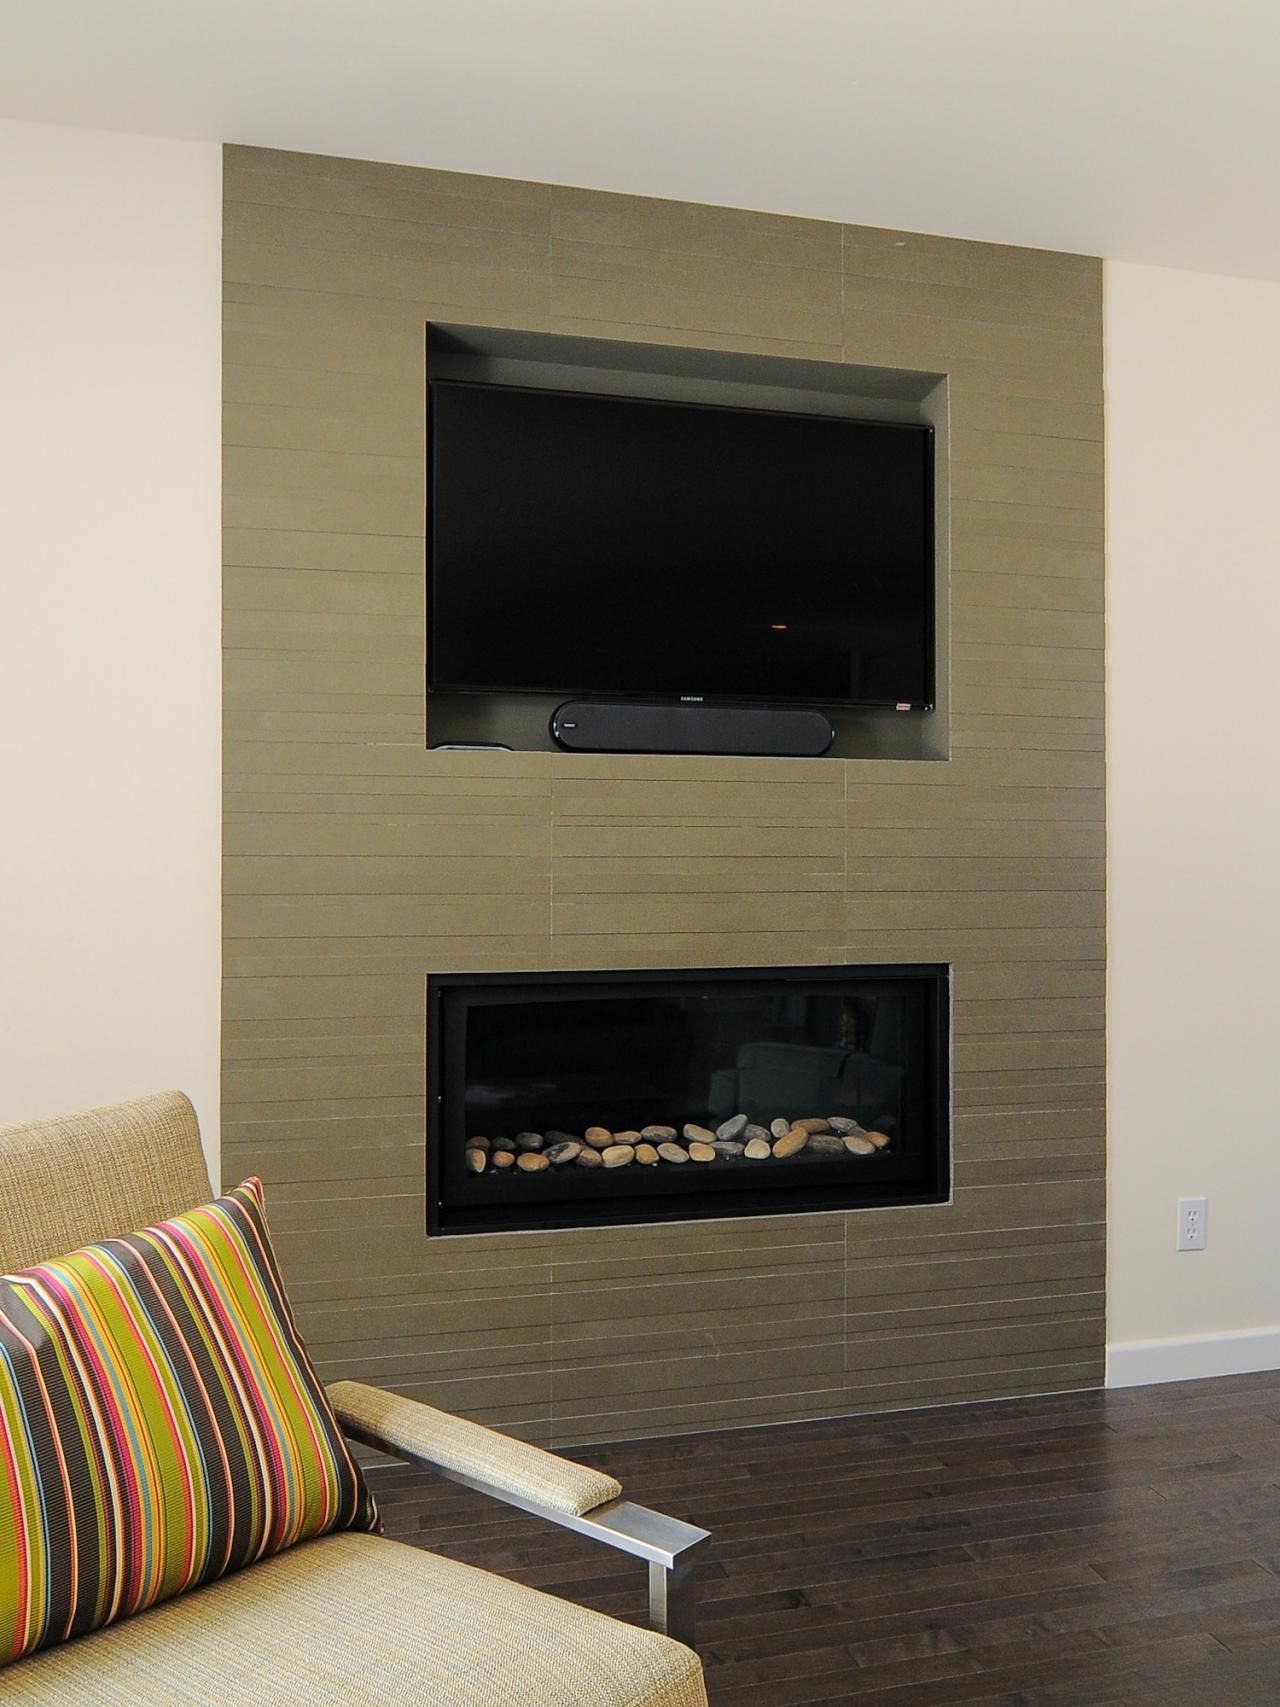 This Floor To Ceiling Fireplace And TV Combo Provides Entertainment And A  Beautiful Focal Point For This Modern Space. Stone Tile And River Rock Add  Warmth ...